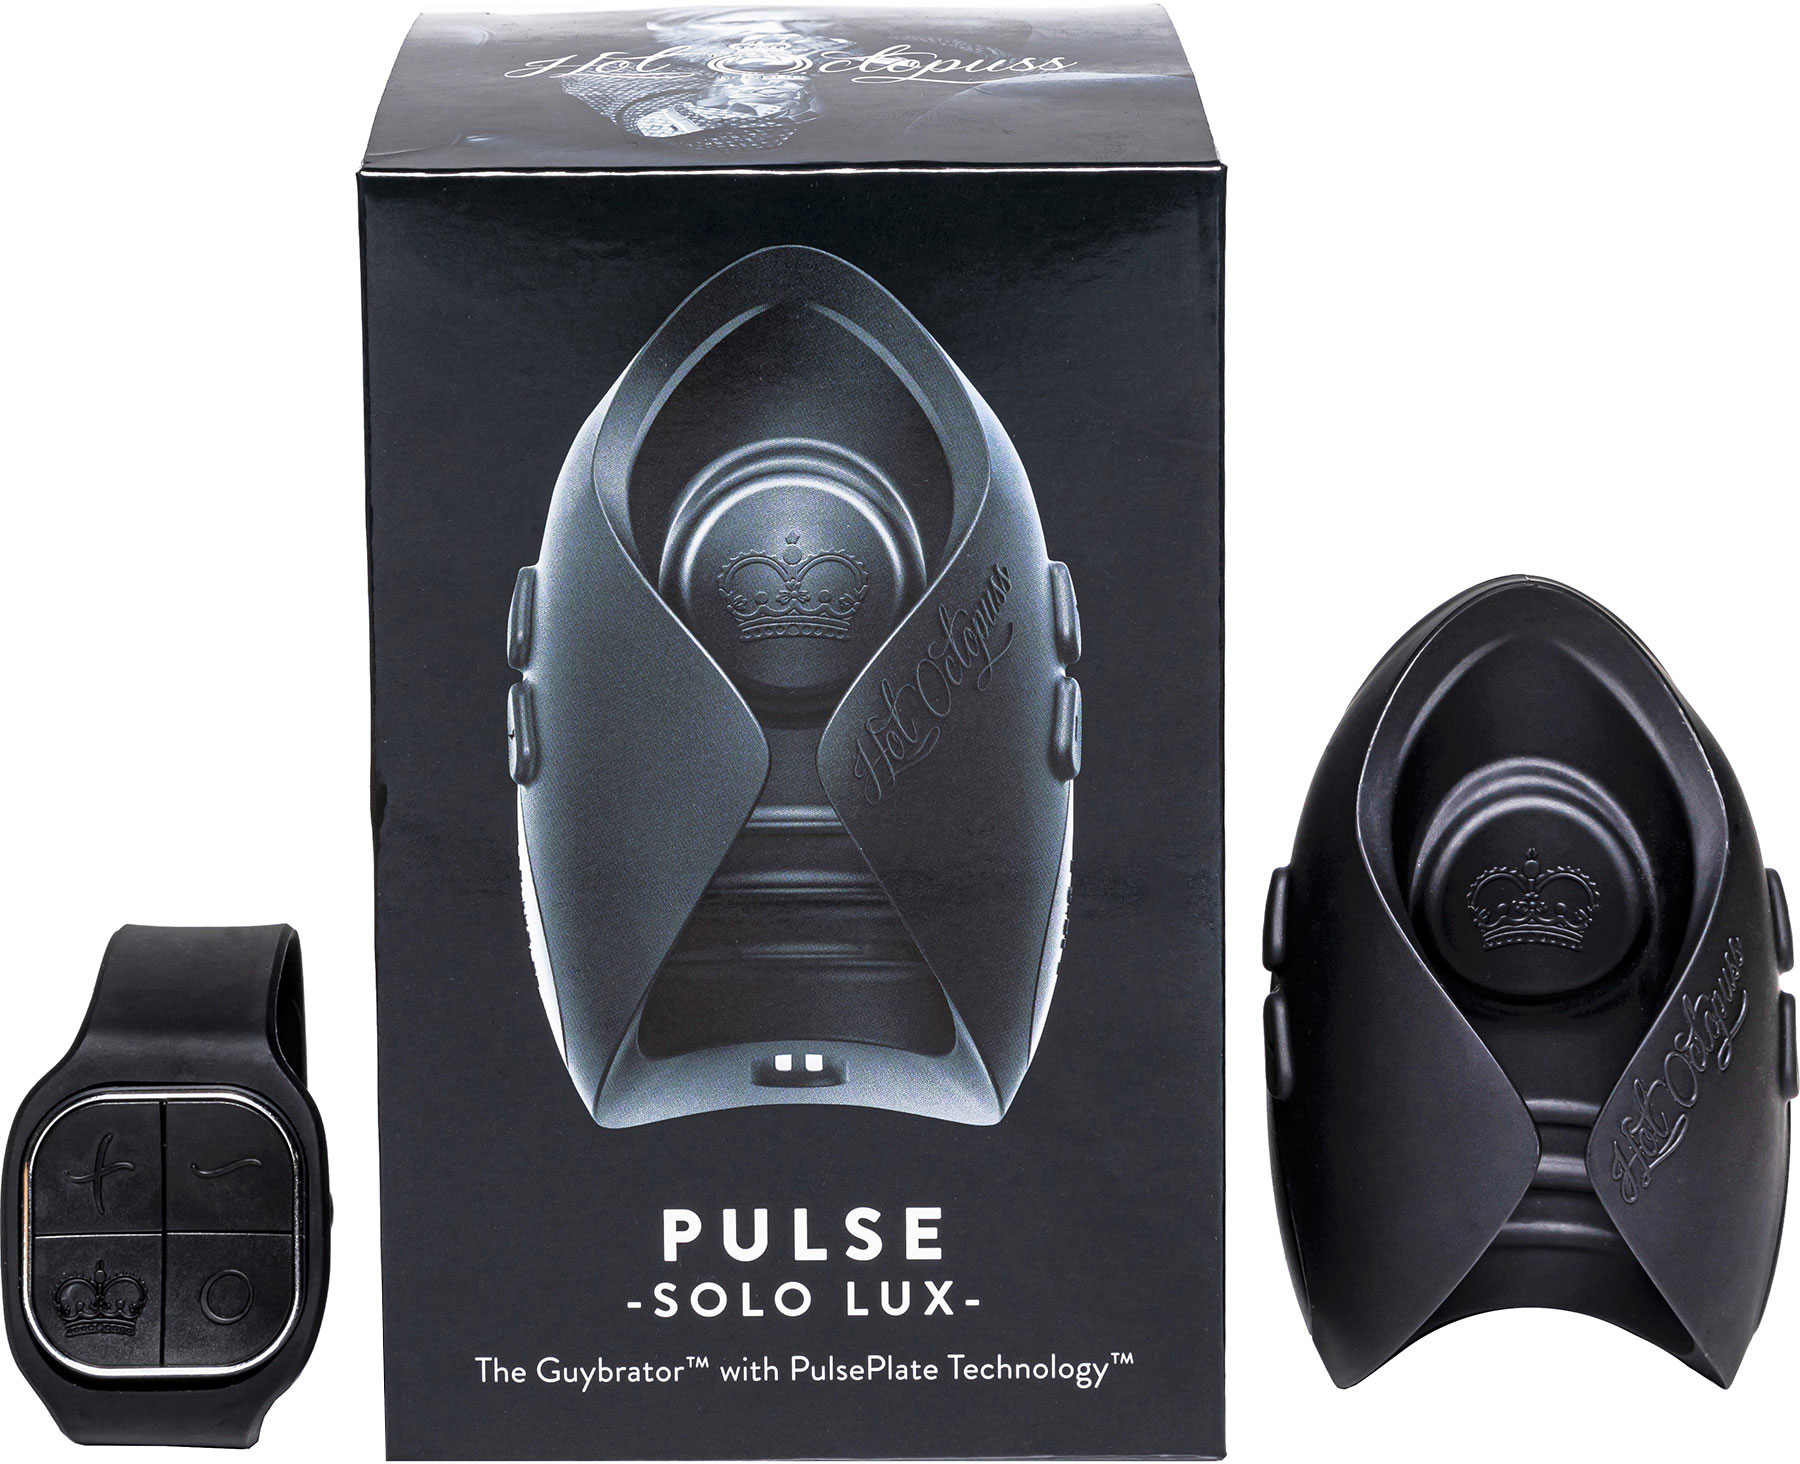 PULSE SOLO LUX Remote Control Oscillating Penis Masturbator by Hot Octopuss - With Package